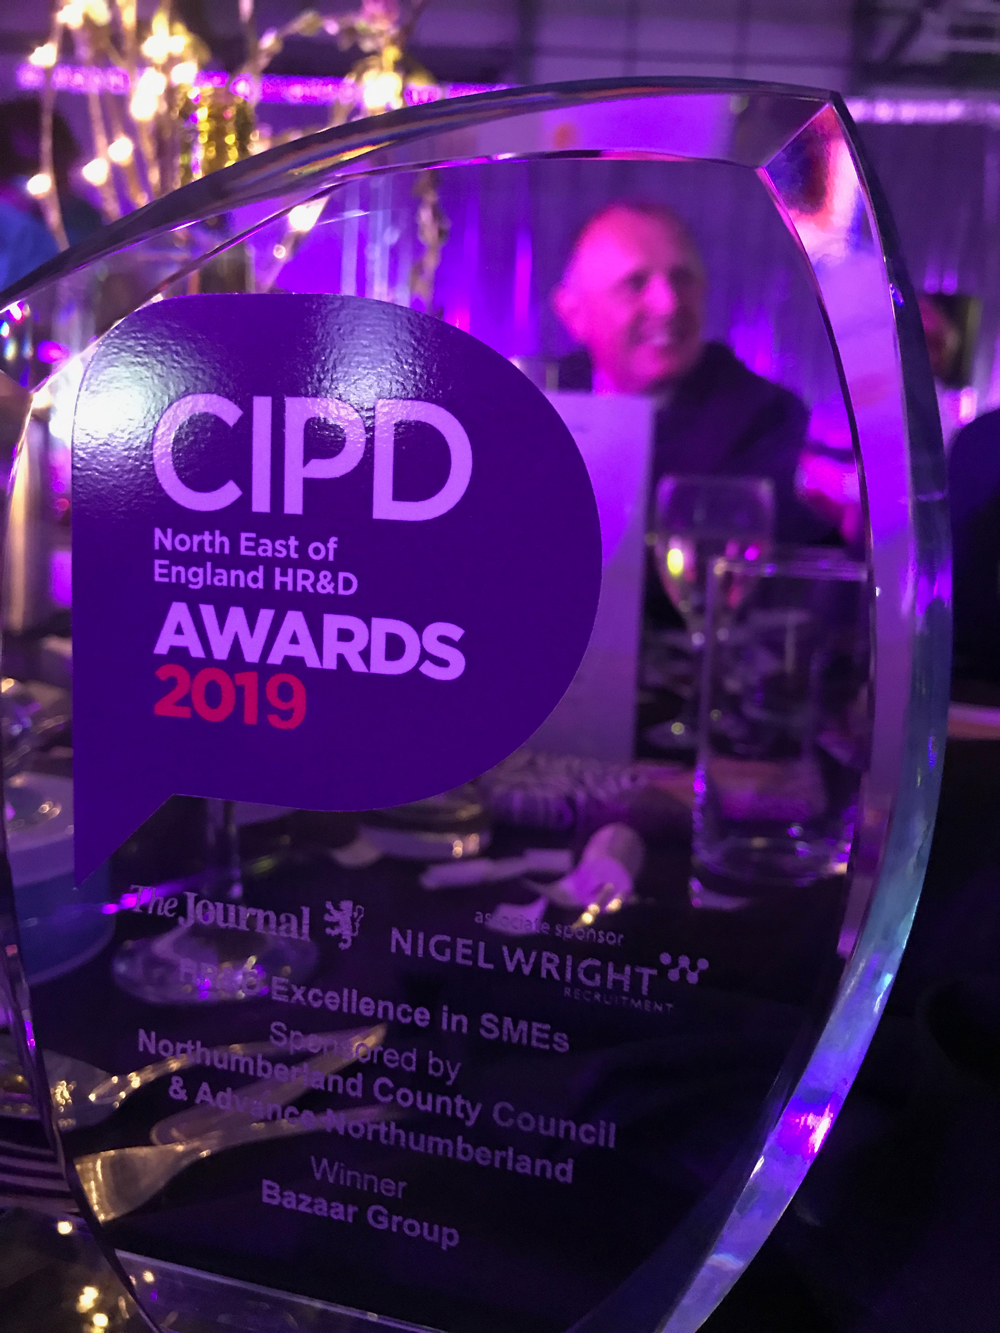 BGRP-CIPD-Awards-2019_Full_Web.jpg